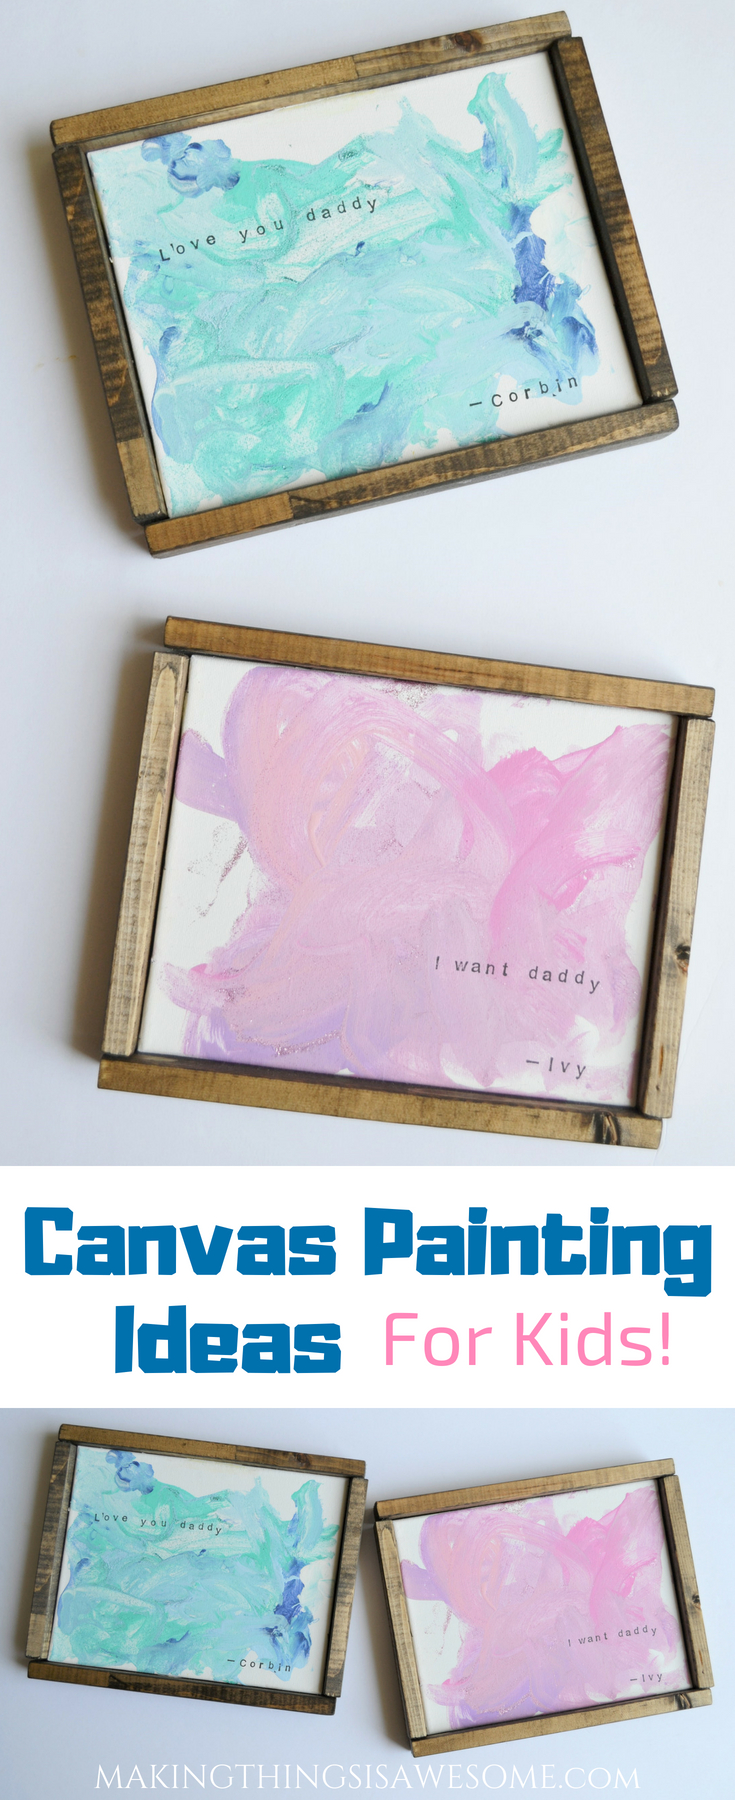 Canvas Painting Ideas For Kids With Easy Diy Canvas Frames Making Things Is Awesome